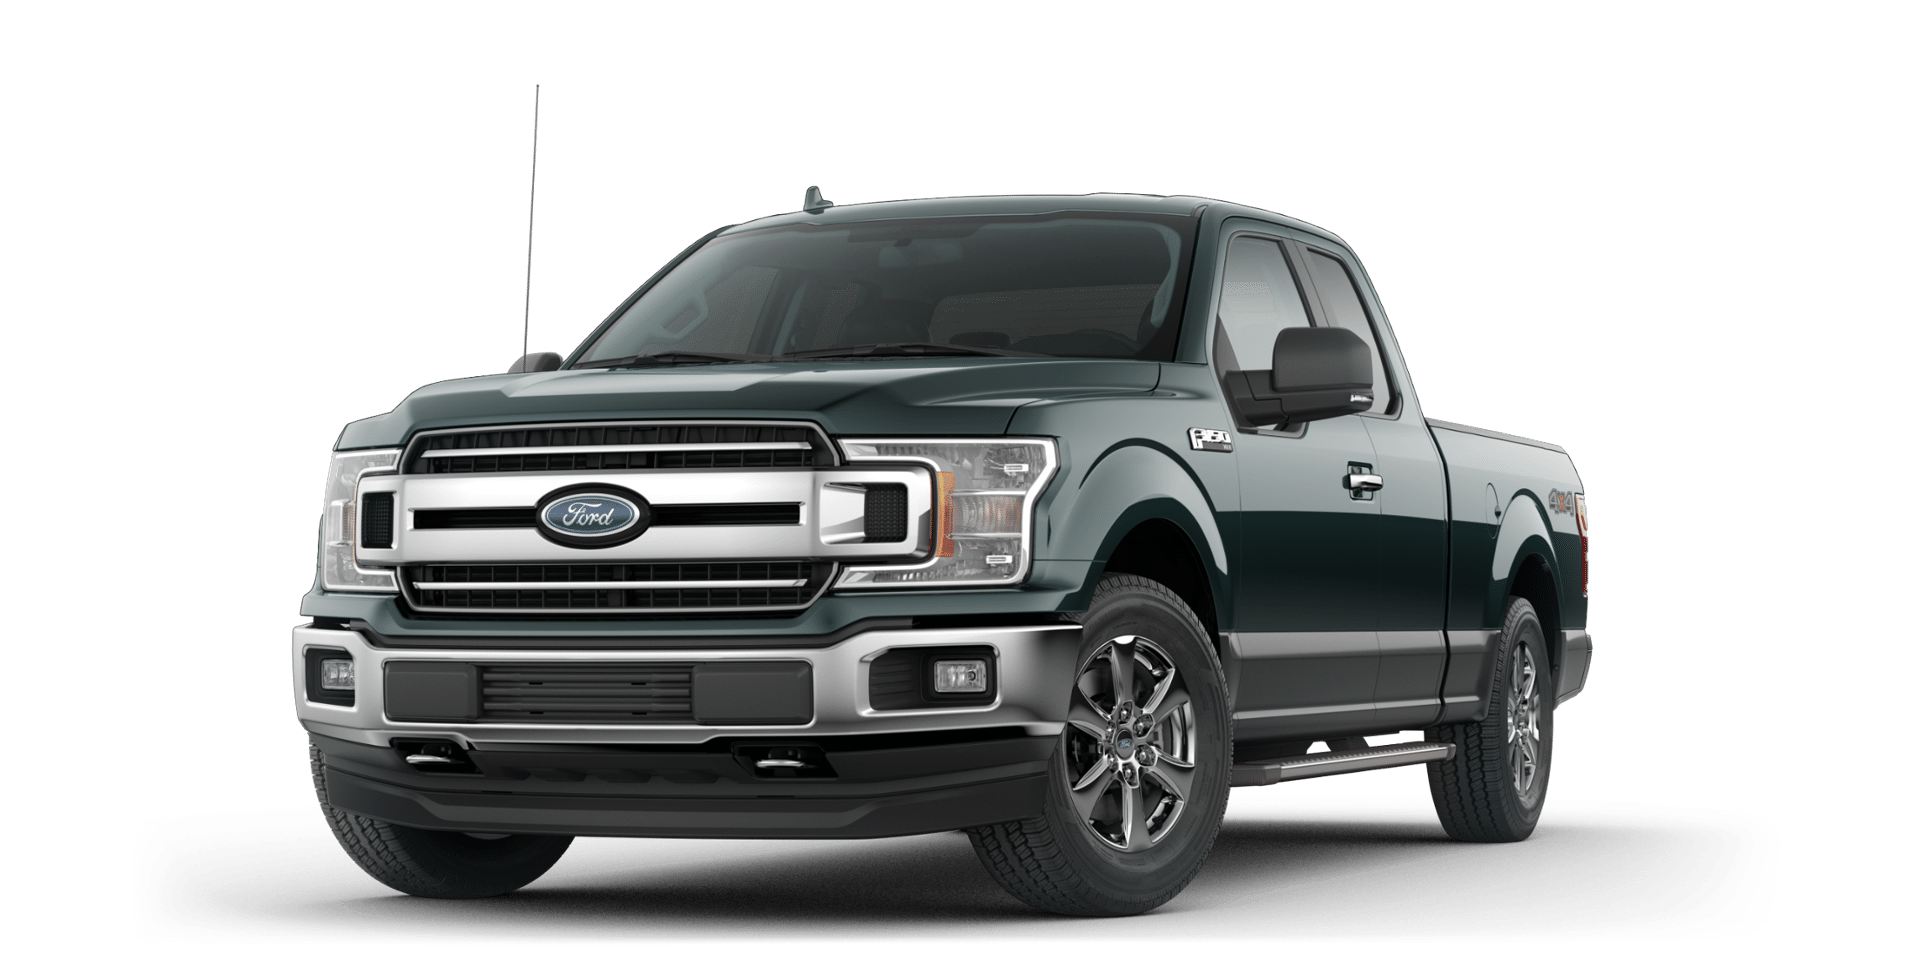 2018 Ford F 150 Build Price Ford F150 Ford Trucks Ford Suv